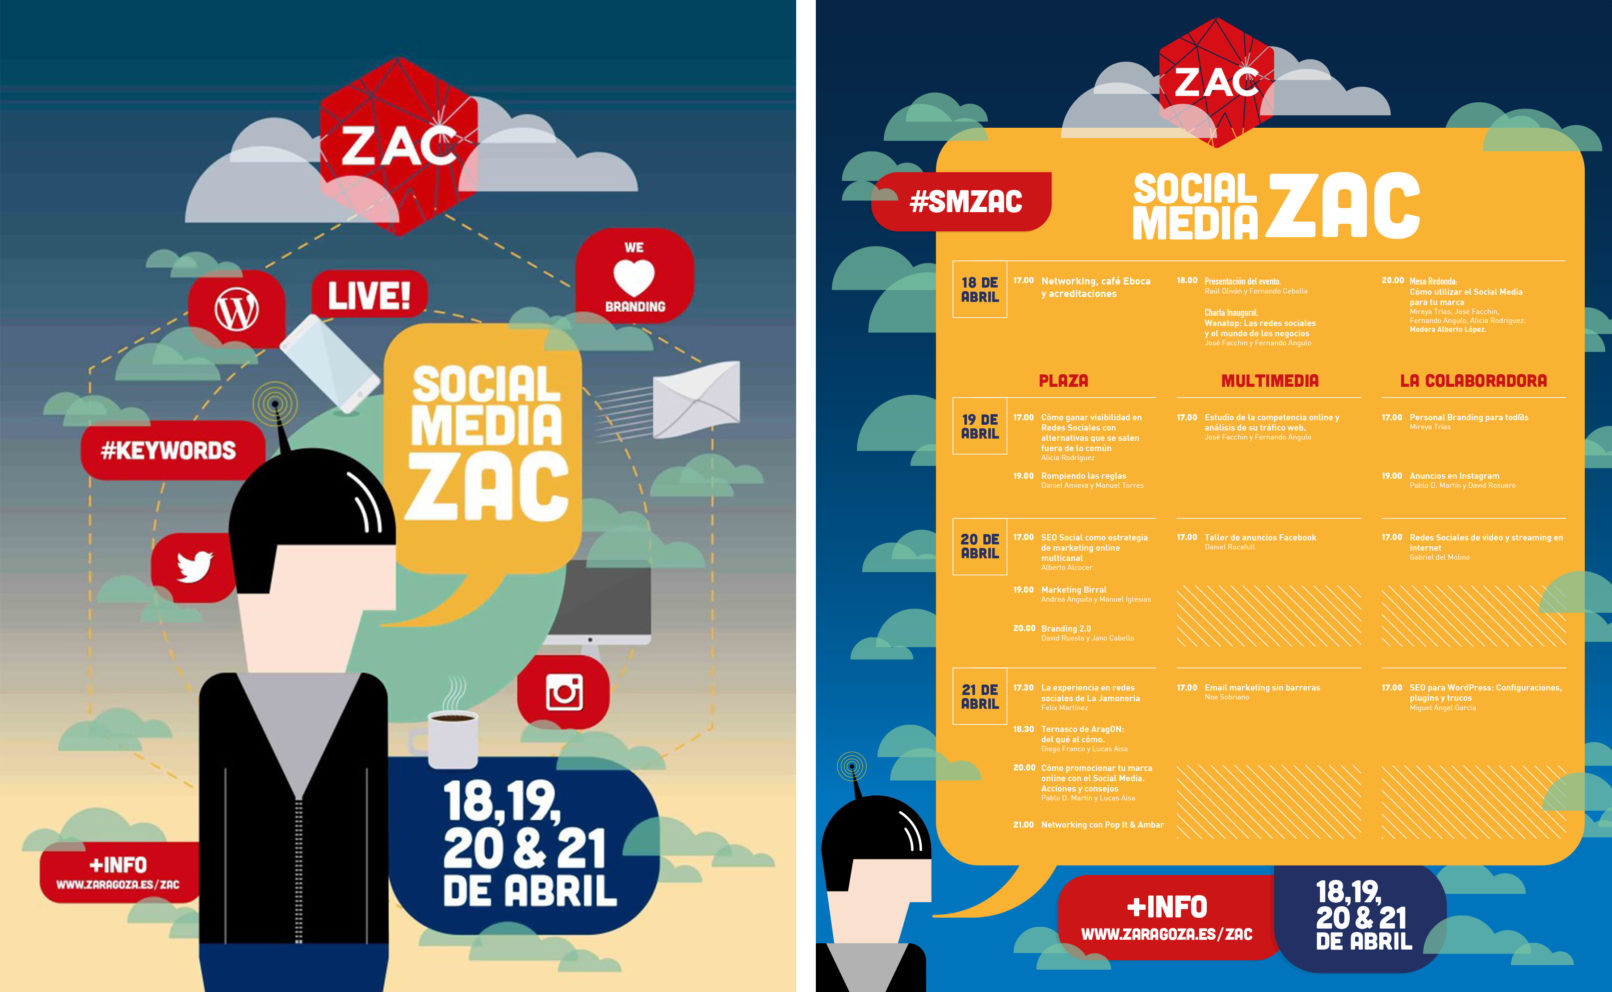 cartel-social-media-zac-zaragoza2016